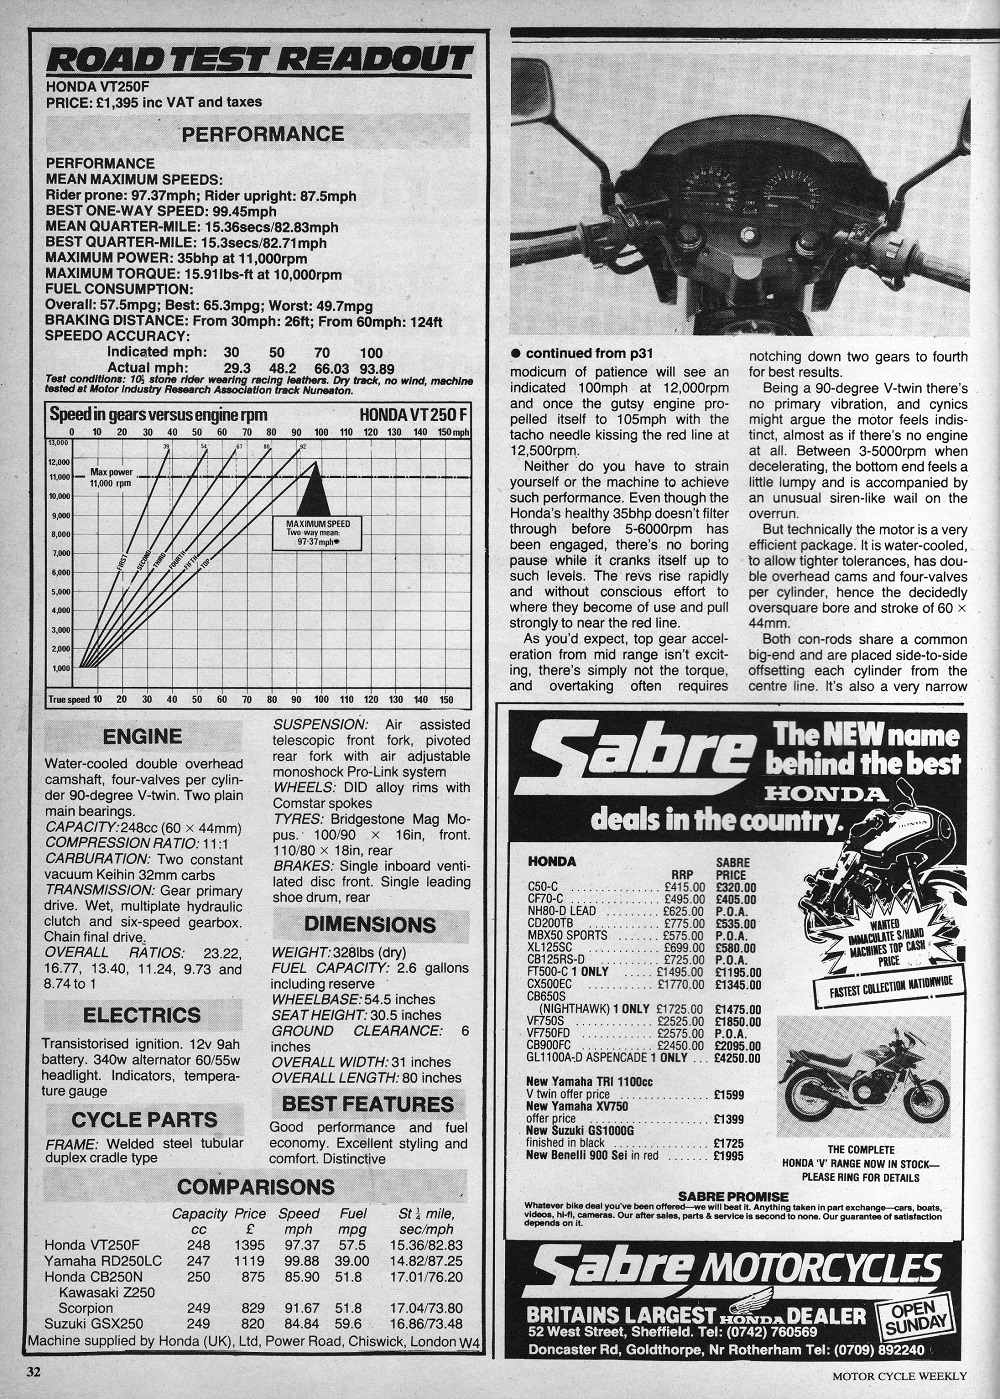 1983 Honda VT250F road test.2.jpg